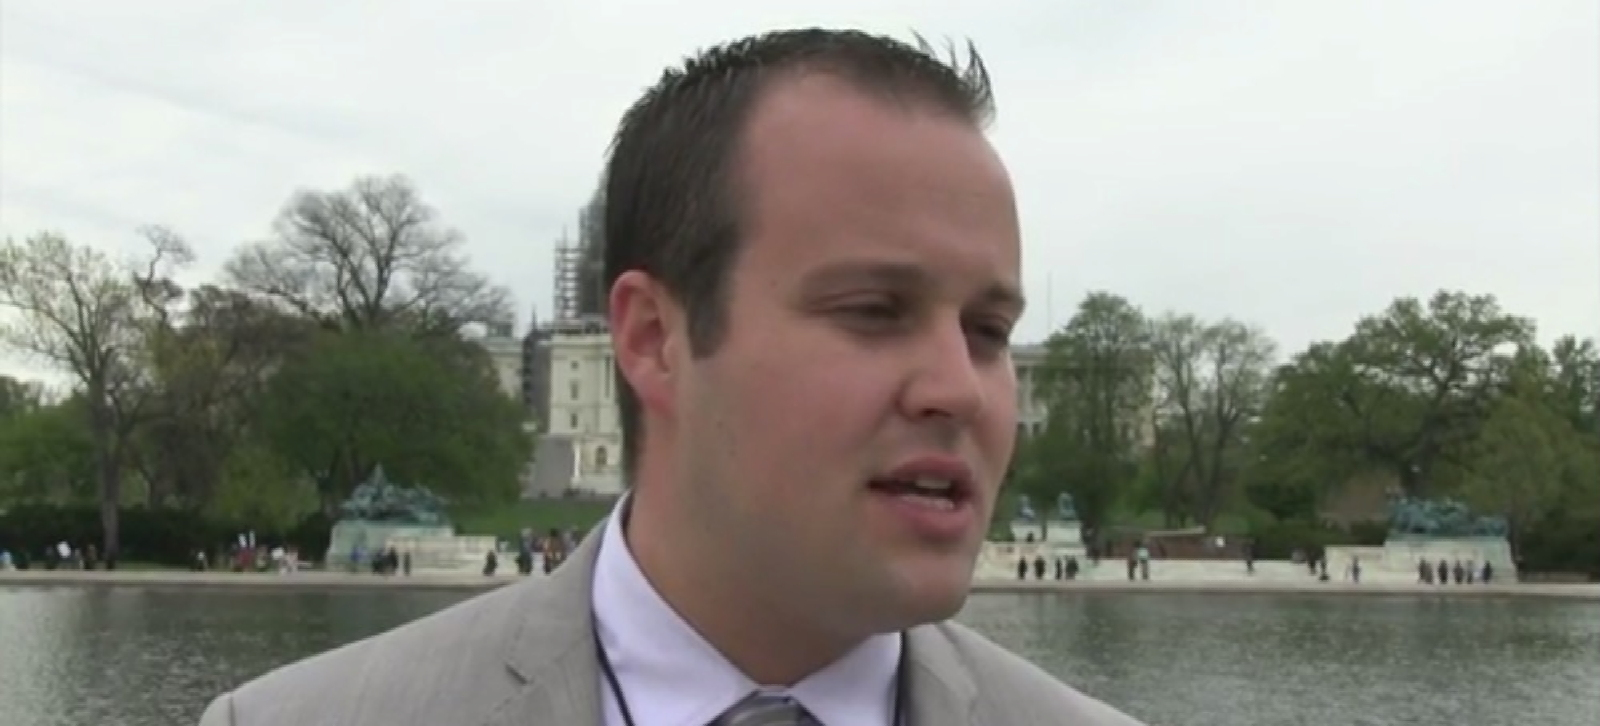 Josh Duggar Just Lost a Lawsuit Against the Tabloid that Broke the Story of His Underage Molestation of 5 Girls